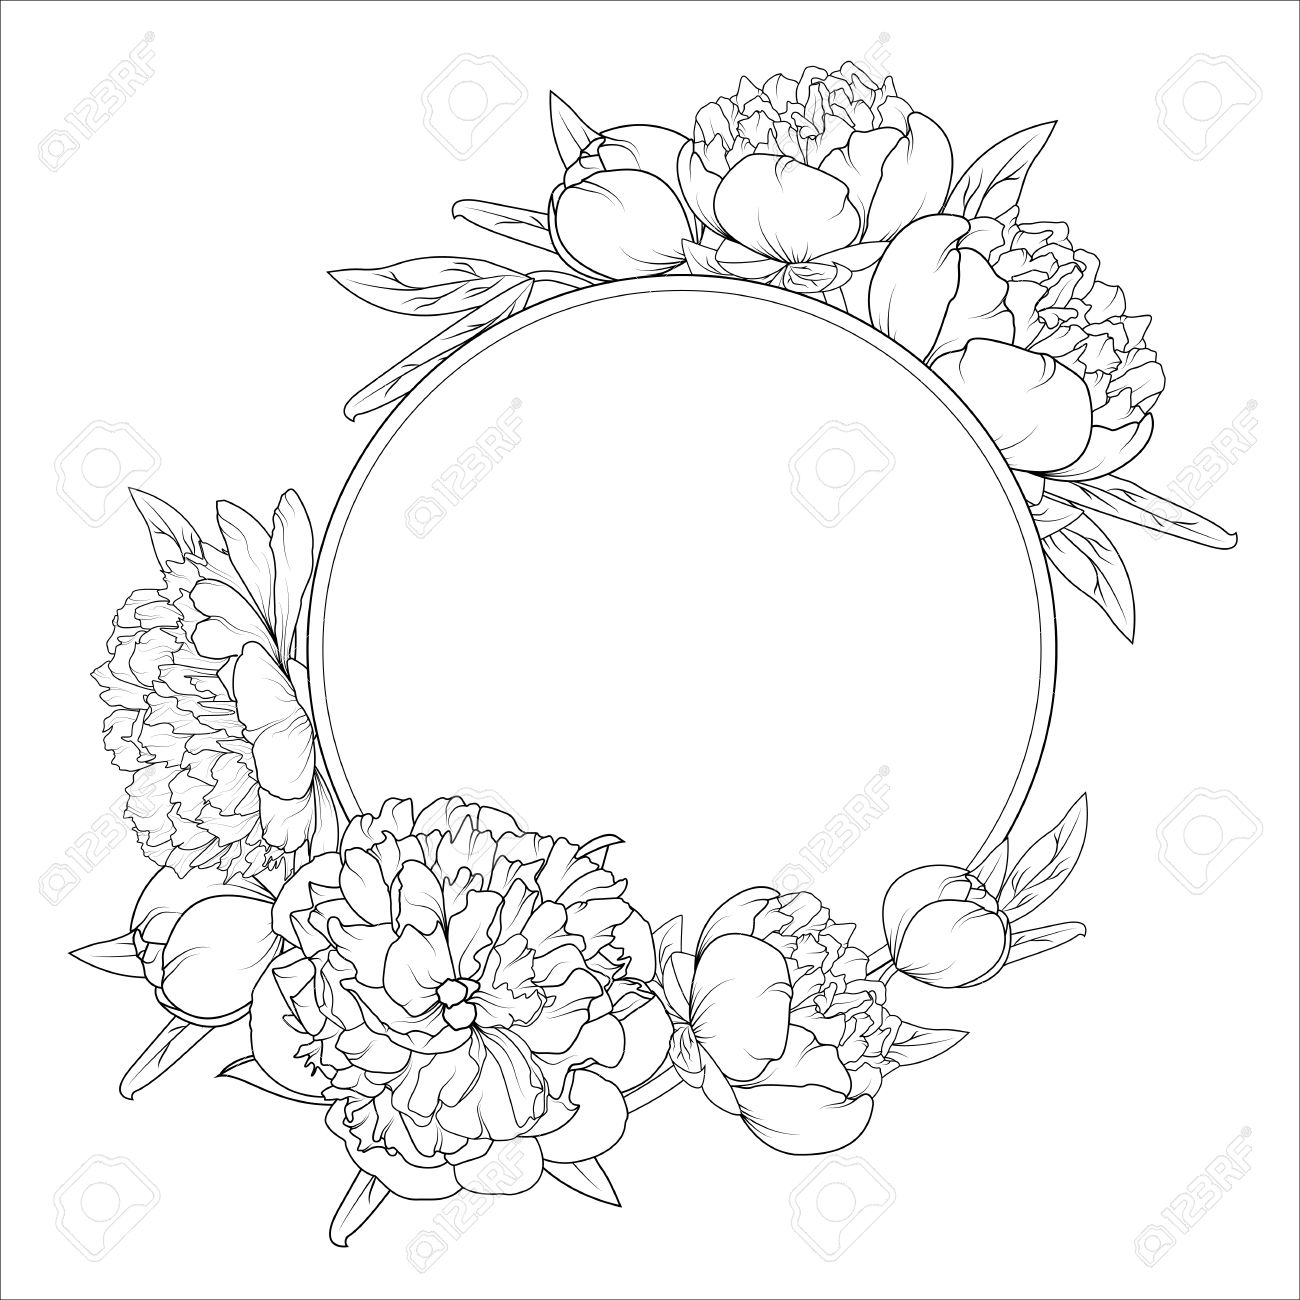 rose garland coloring pages - photo#12